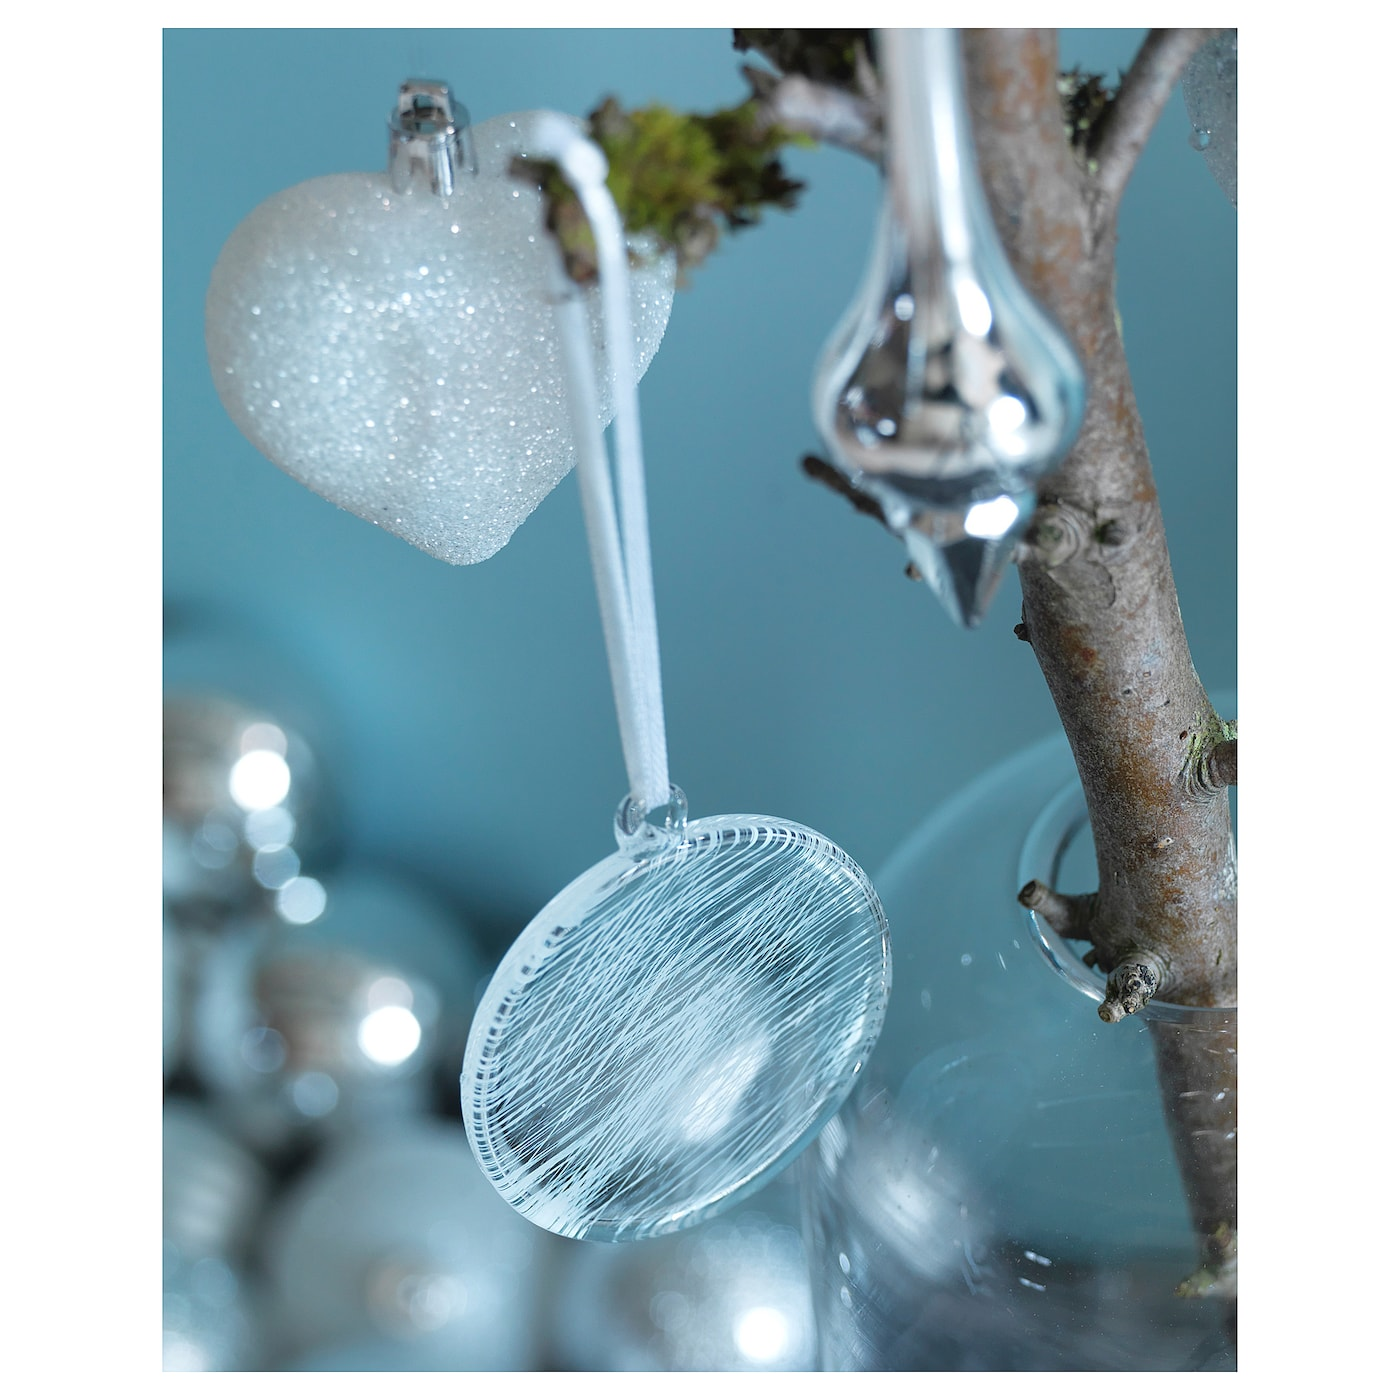 IKEA VINTER 2017 hanging decoration Easy to hang up since it comes with ribbons already attached.